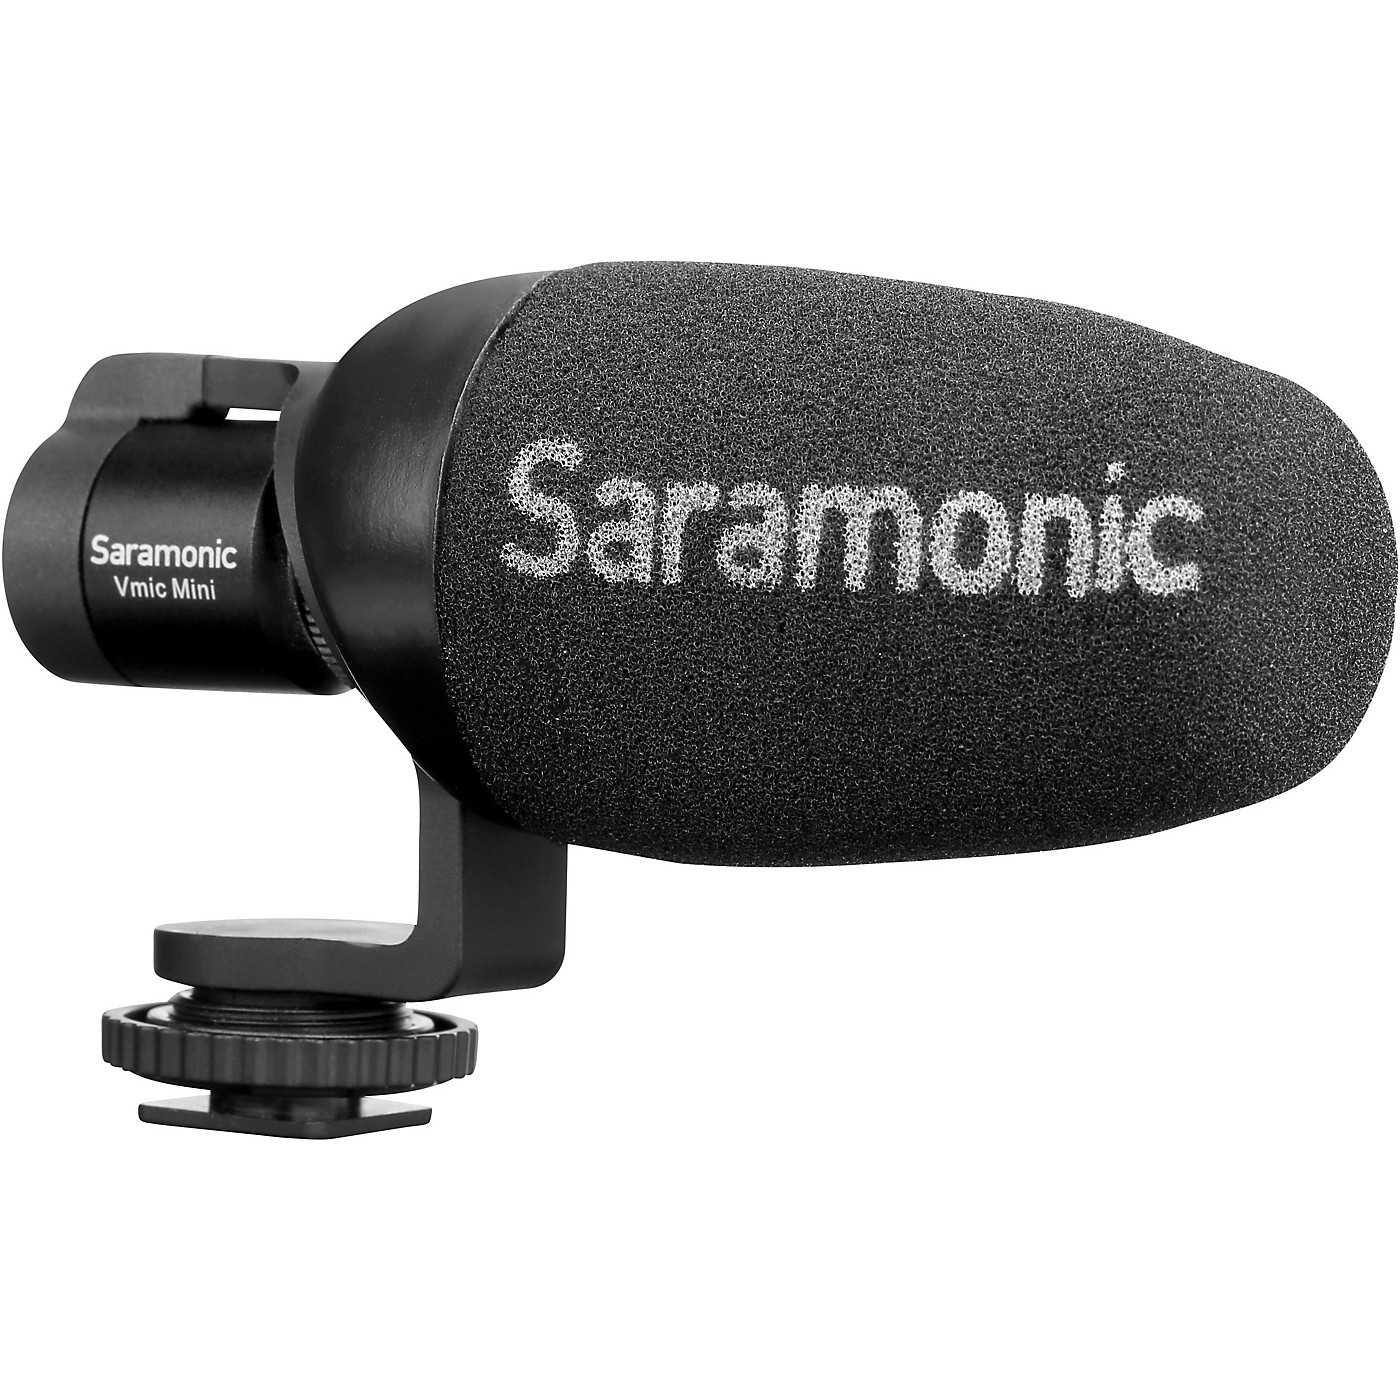 Saramonic VMIC Mini Shotgun Microphone for DSLR, Mirrorless and Video Cameras or Smartphones and Tablets thumbnail